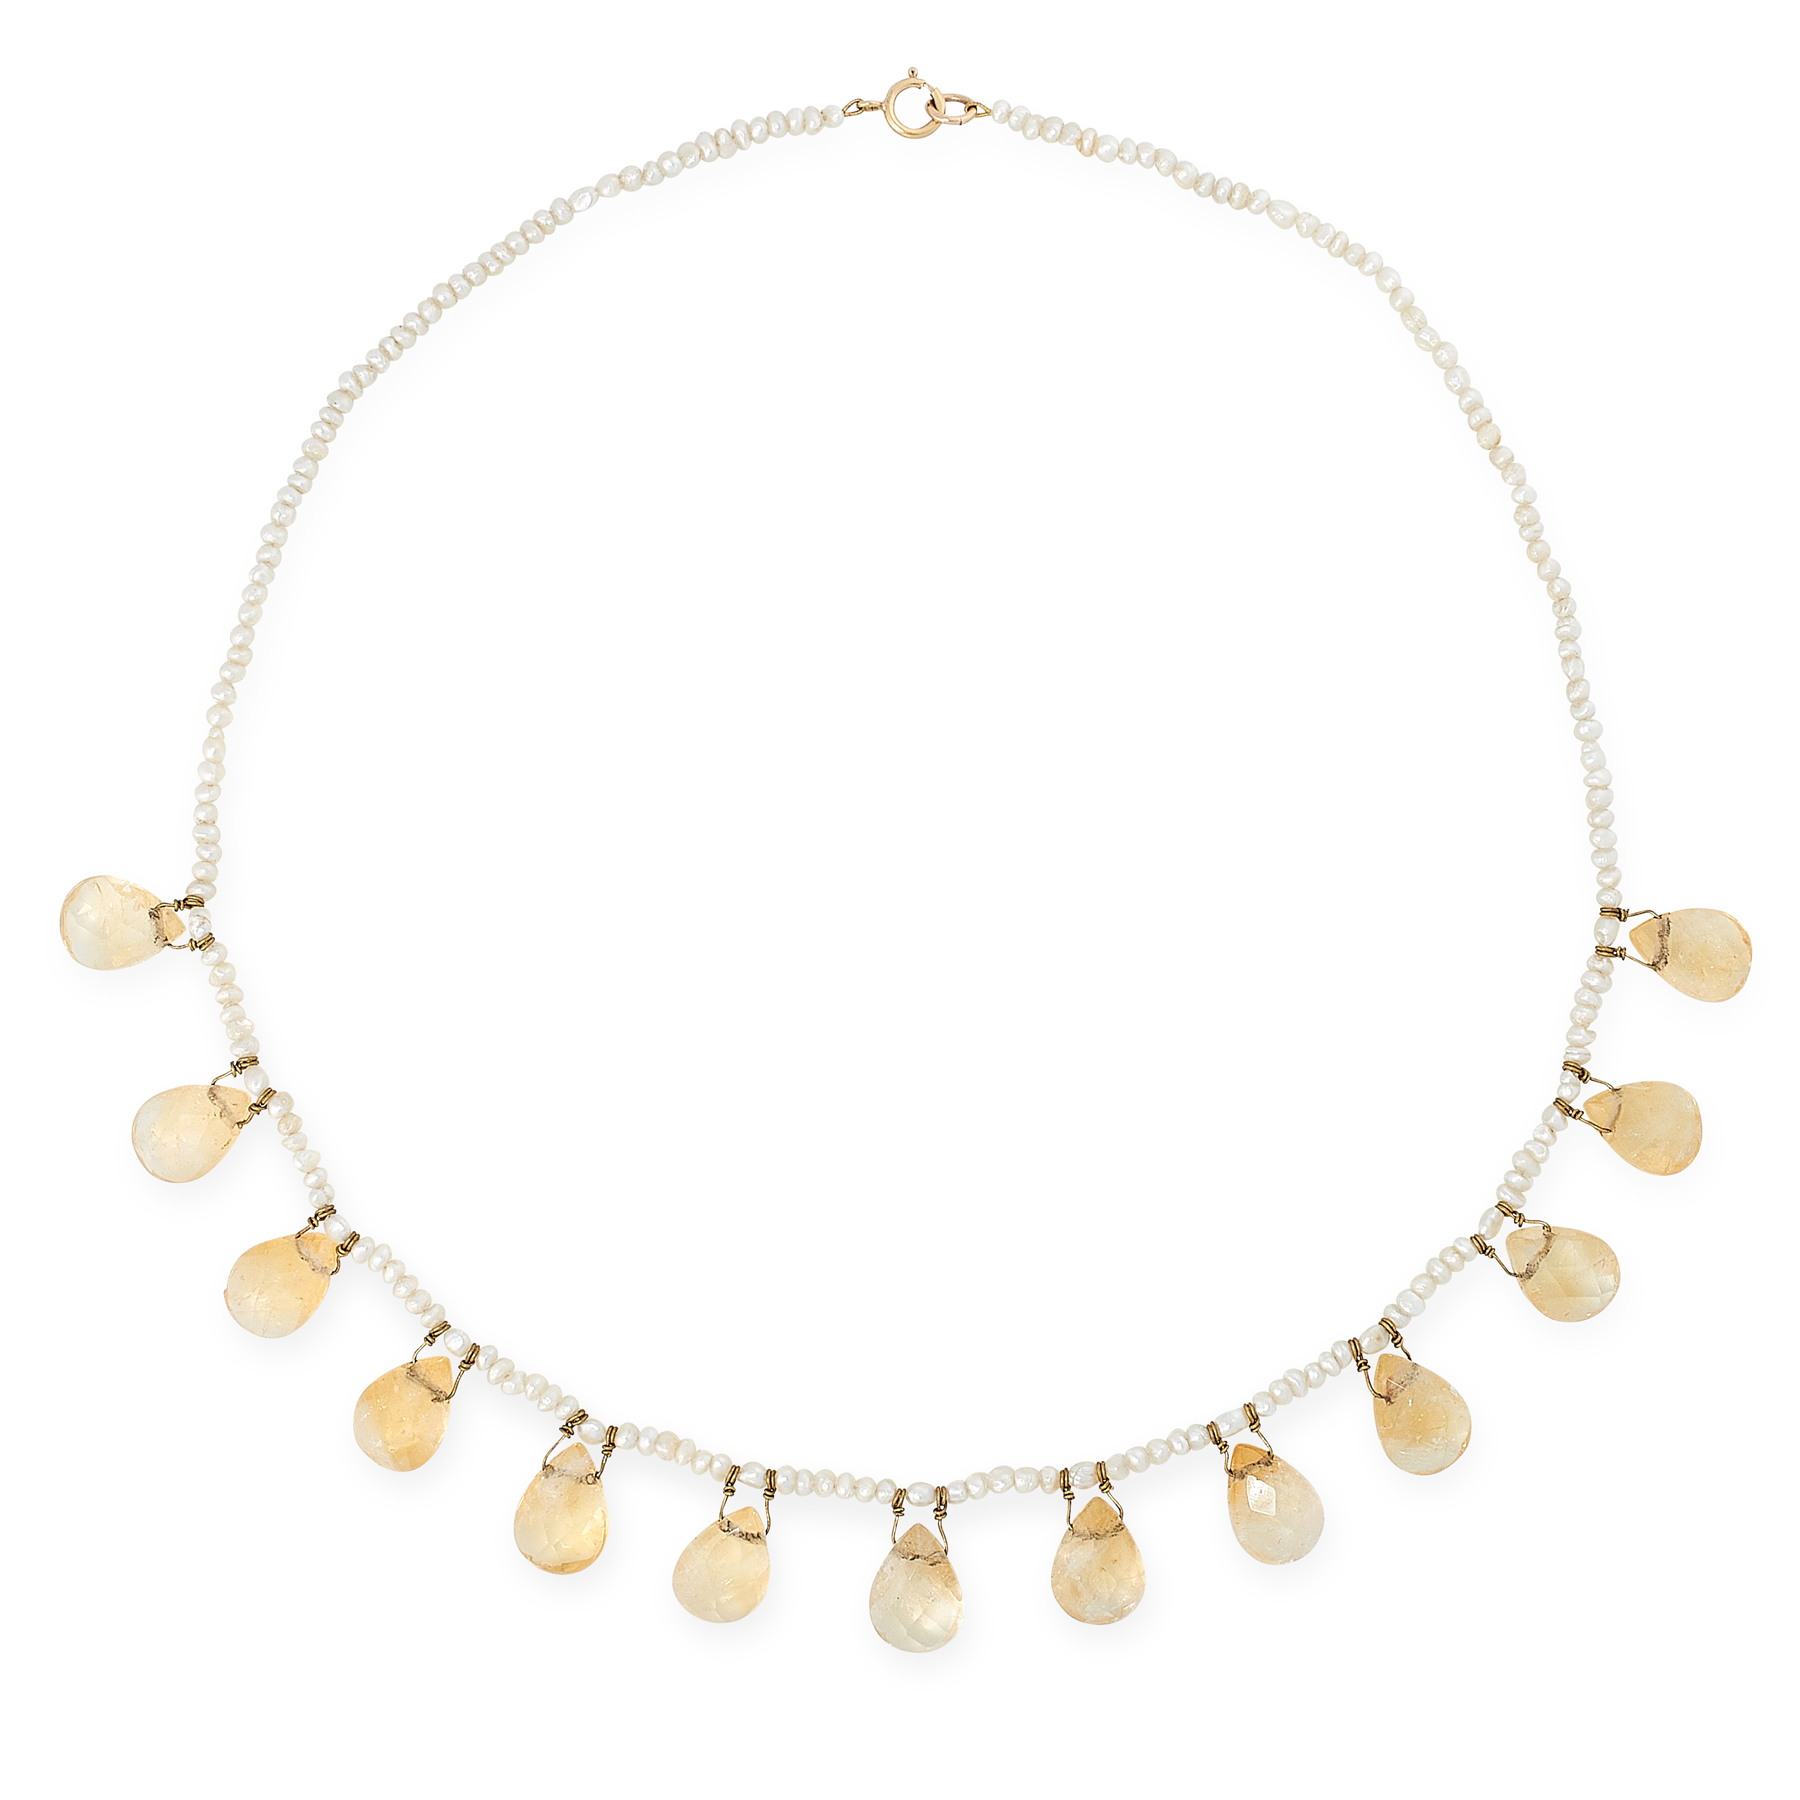 AN ANTIQUE CITRINE AND PEARL NECKLACE, 19TH CENTURY comprising a single row of seed pearls